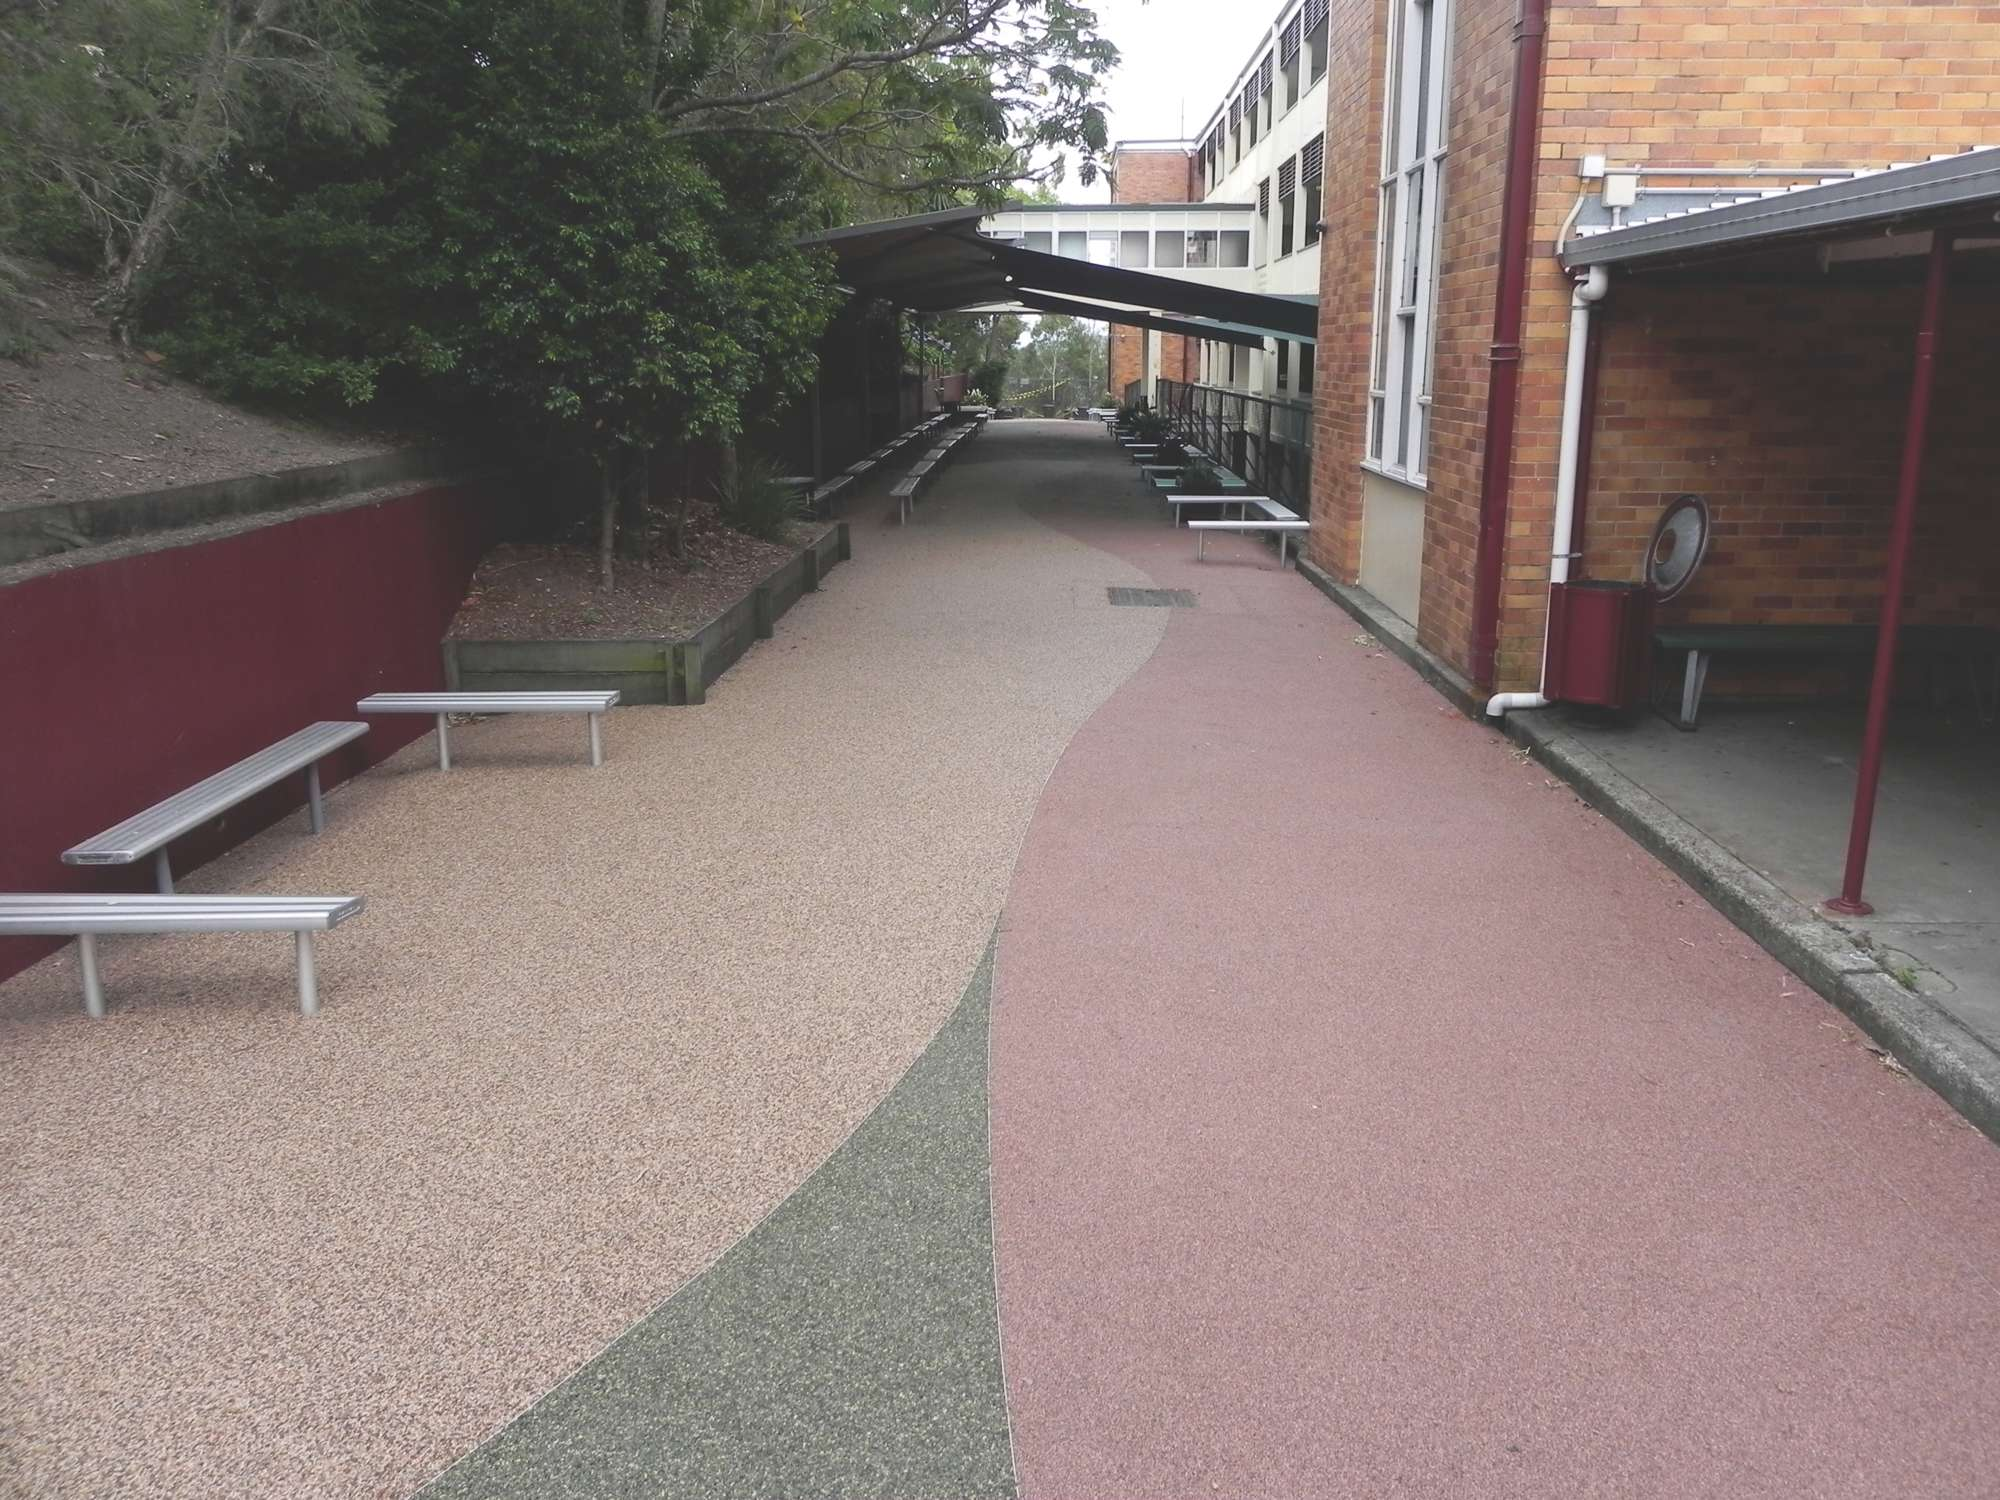 Overlay paving with patterns and design into the surface